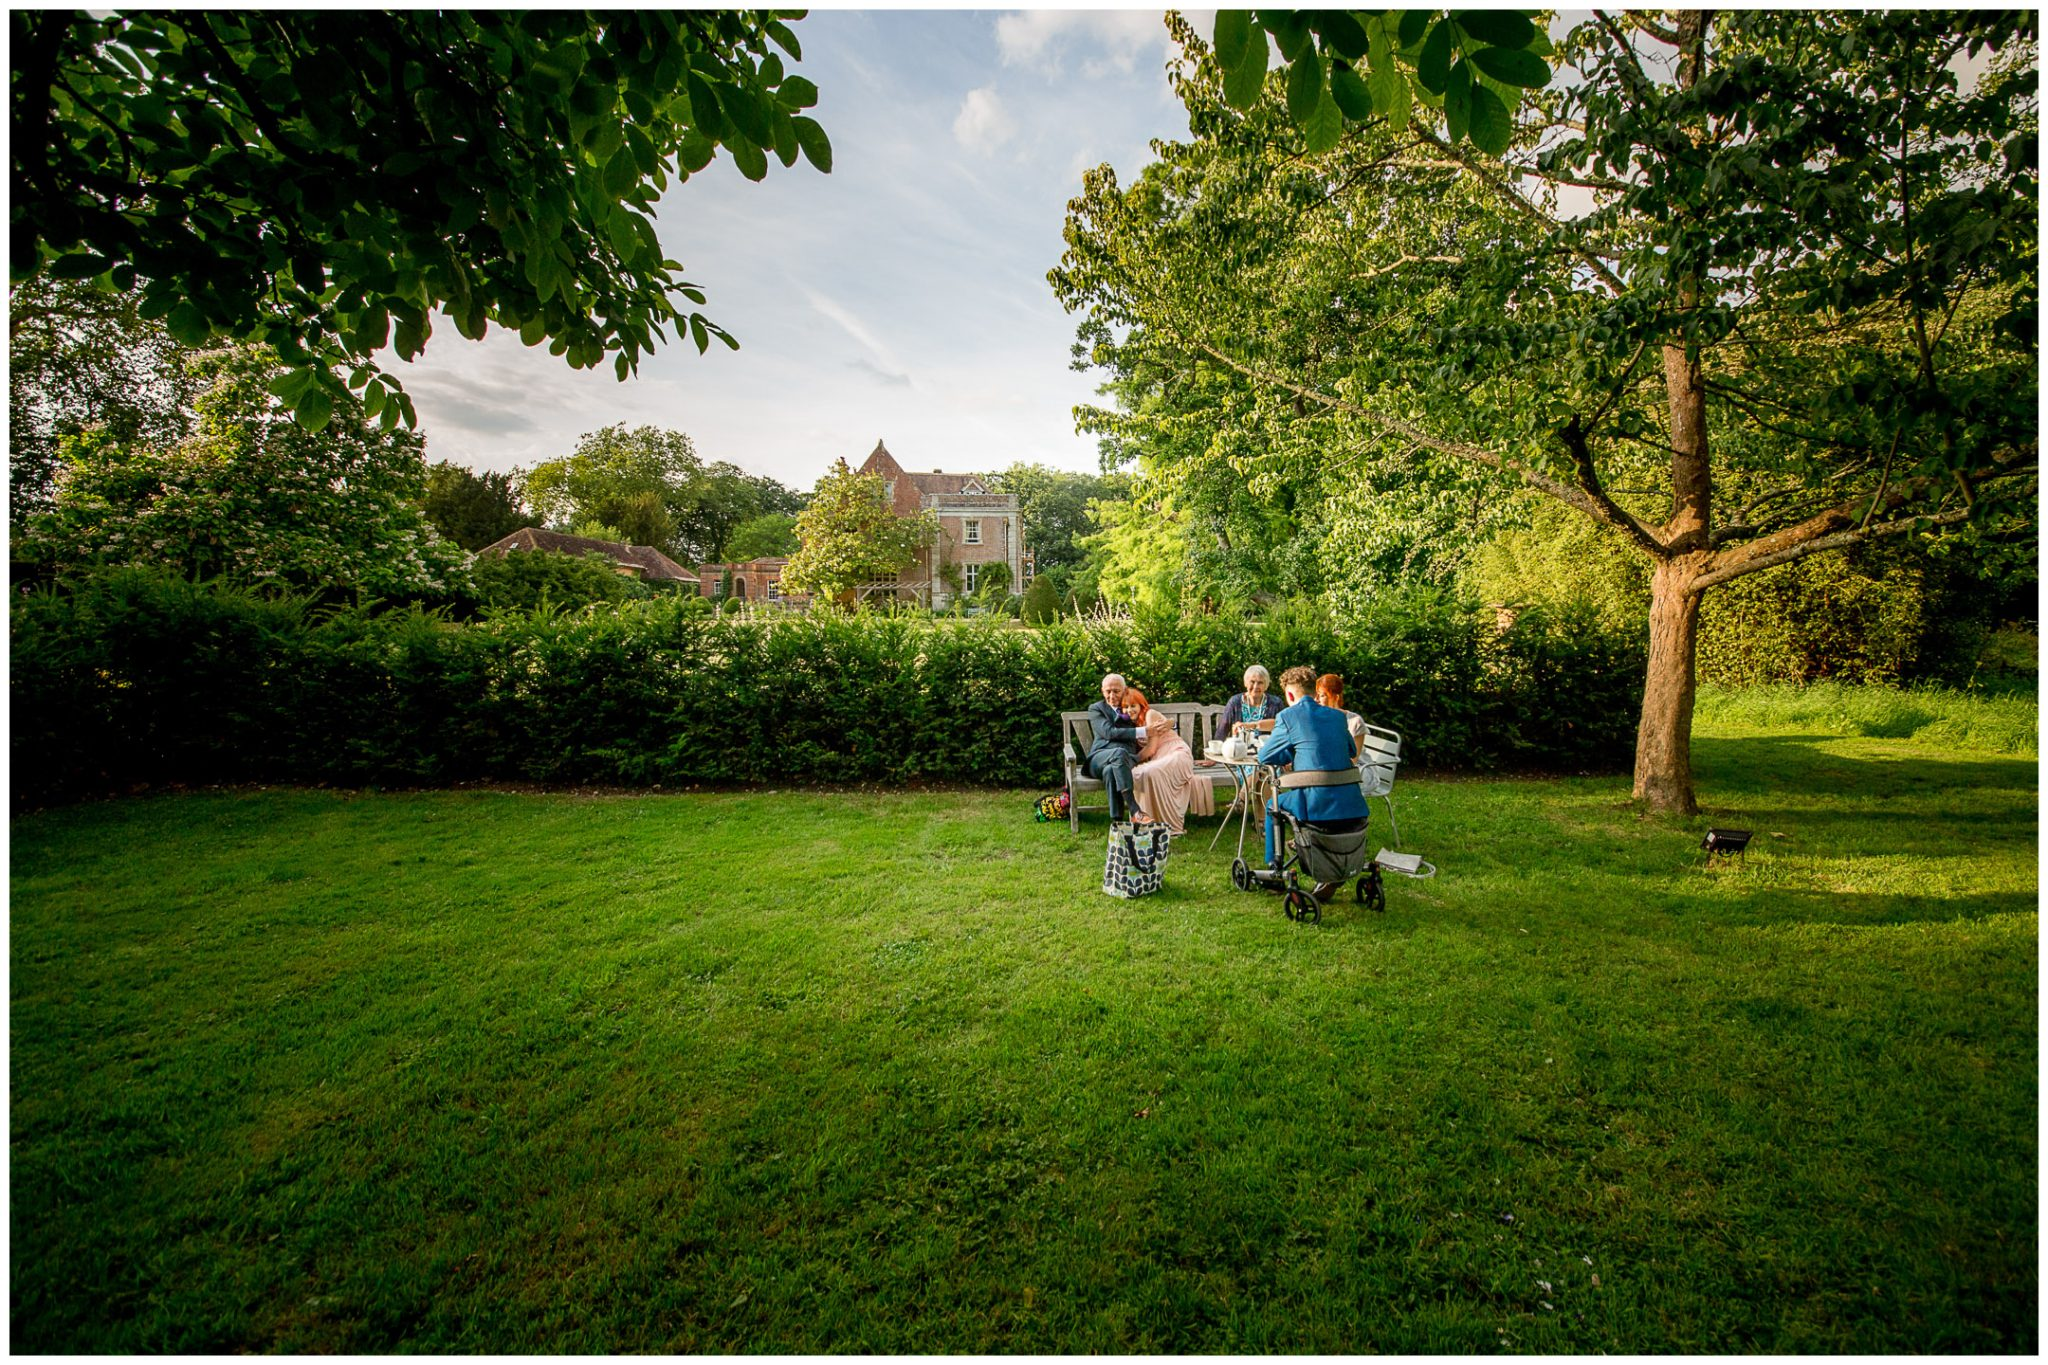 Family members relaxing in the evening light